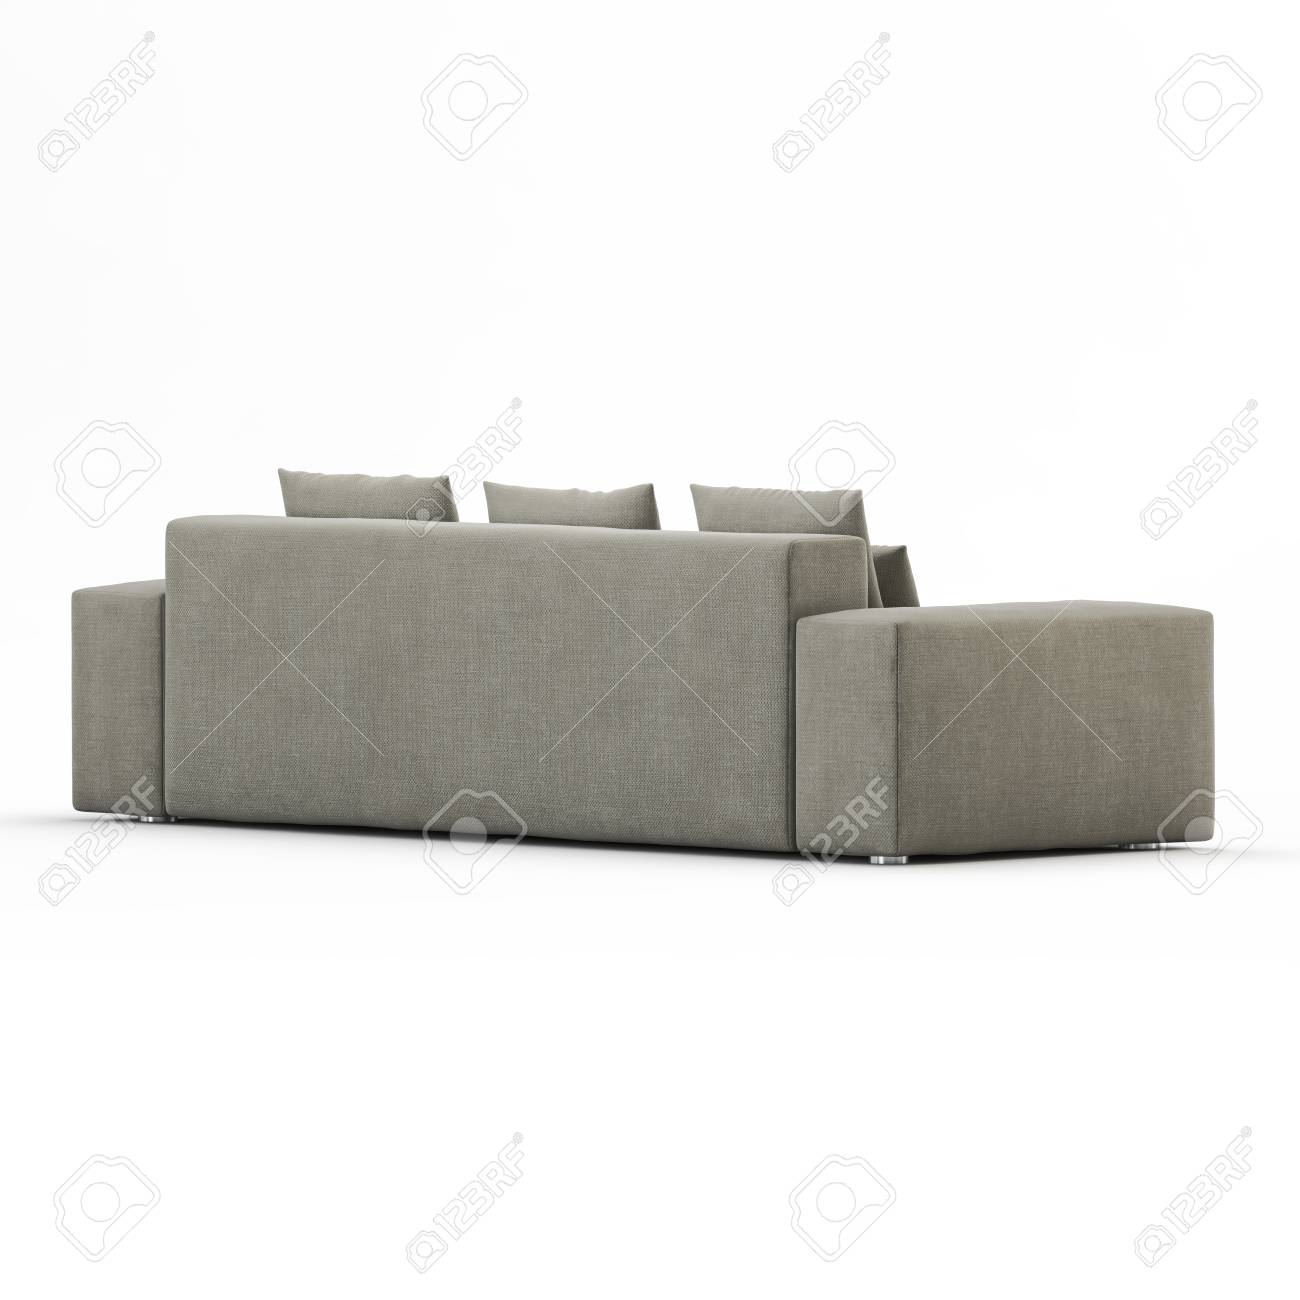 Pleasant Three Seater Sofa With Pillows On A White Background Back View Ocoug Best Dining Table And Chair Ideas Images Ocougorg